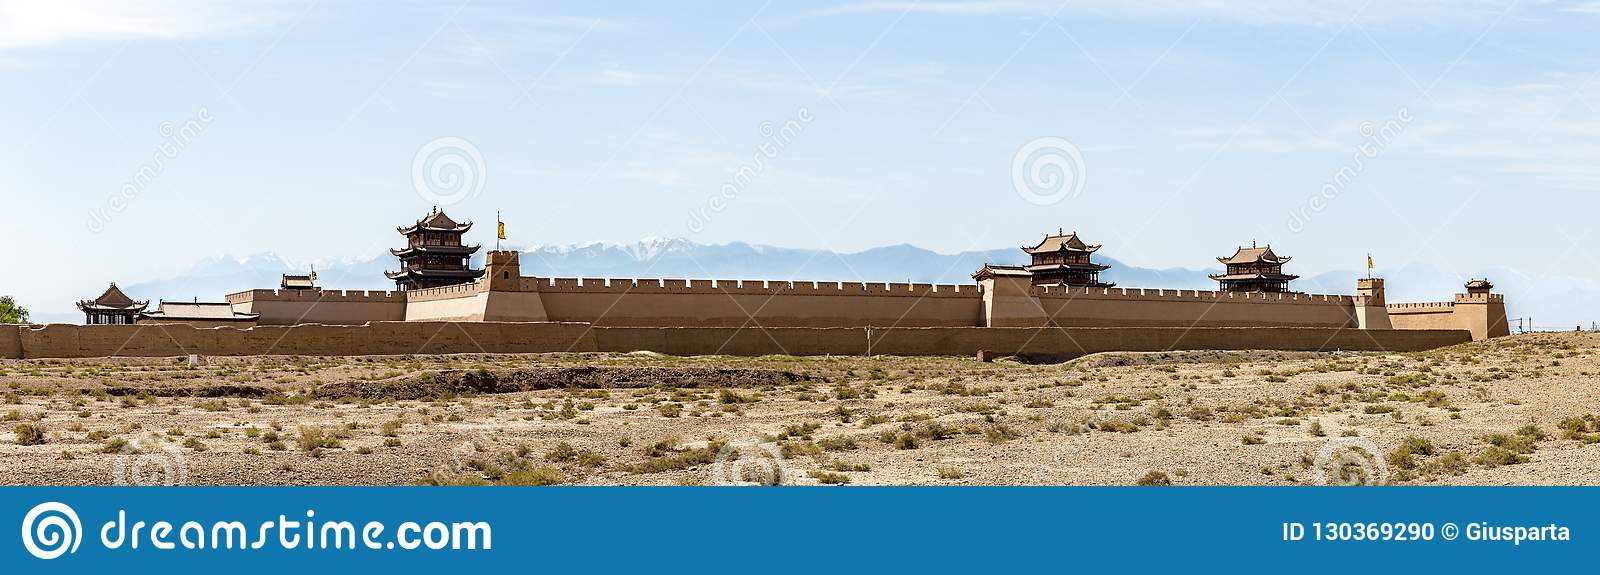 View of Jiayuguan Fort with snow capped mountains on the backgrond, Gansu, China